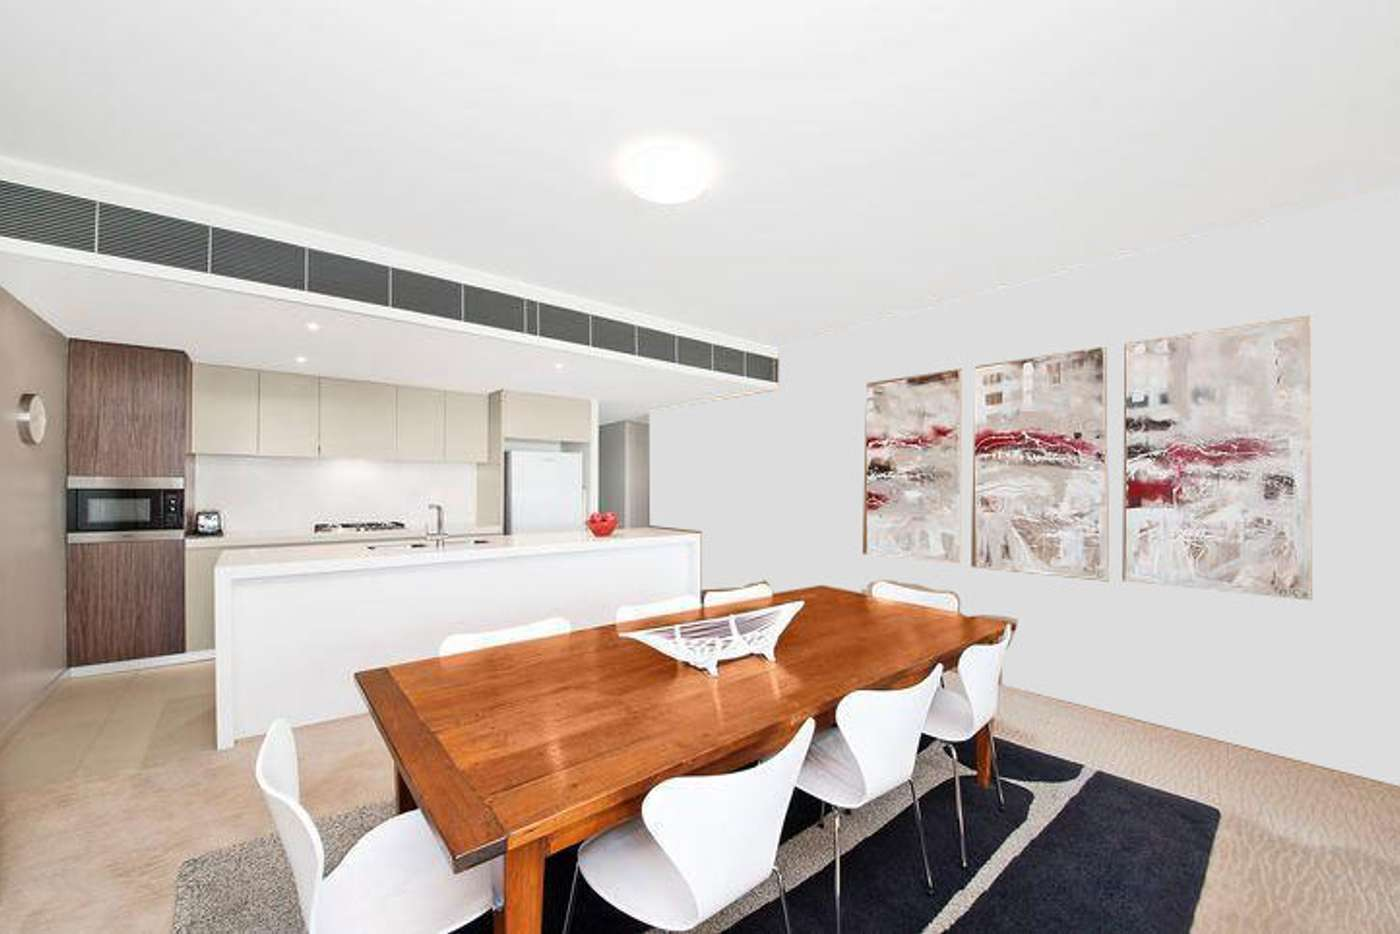 Main view of Homely apartment listing, 206/19-21 Grosvenor Street, Neutral Bay NSW 2089